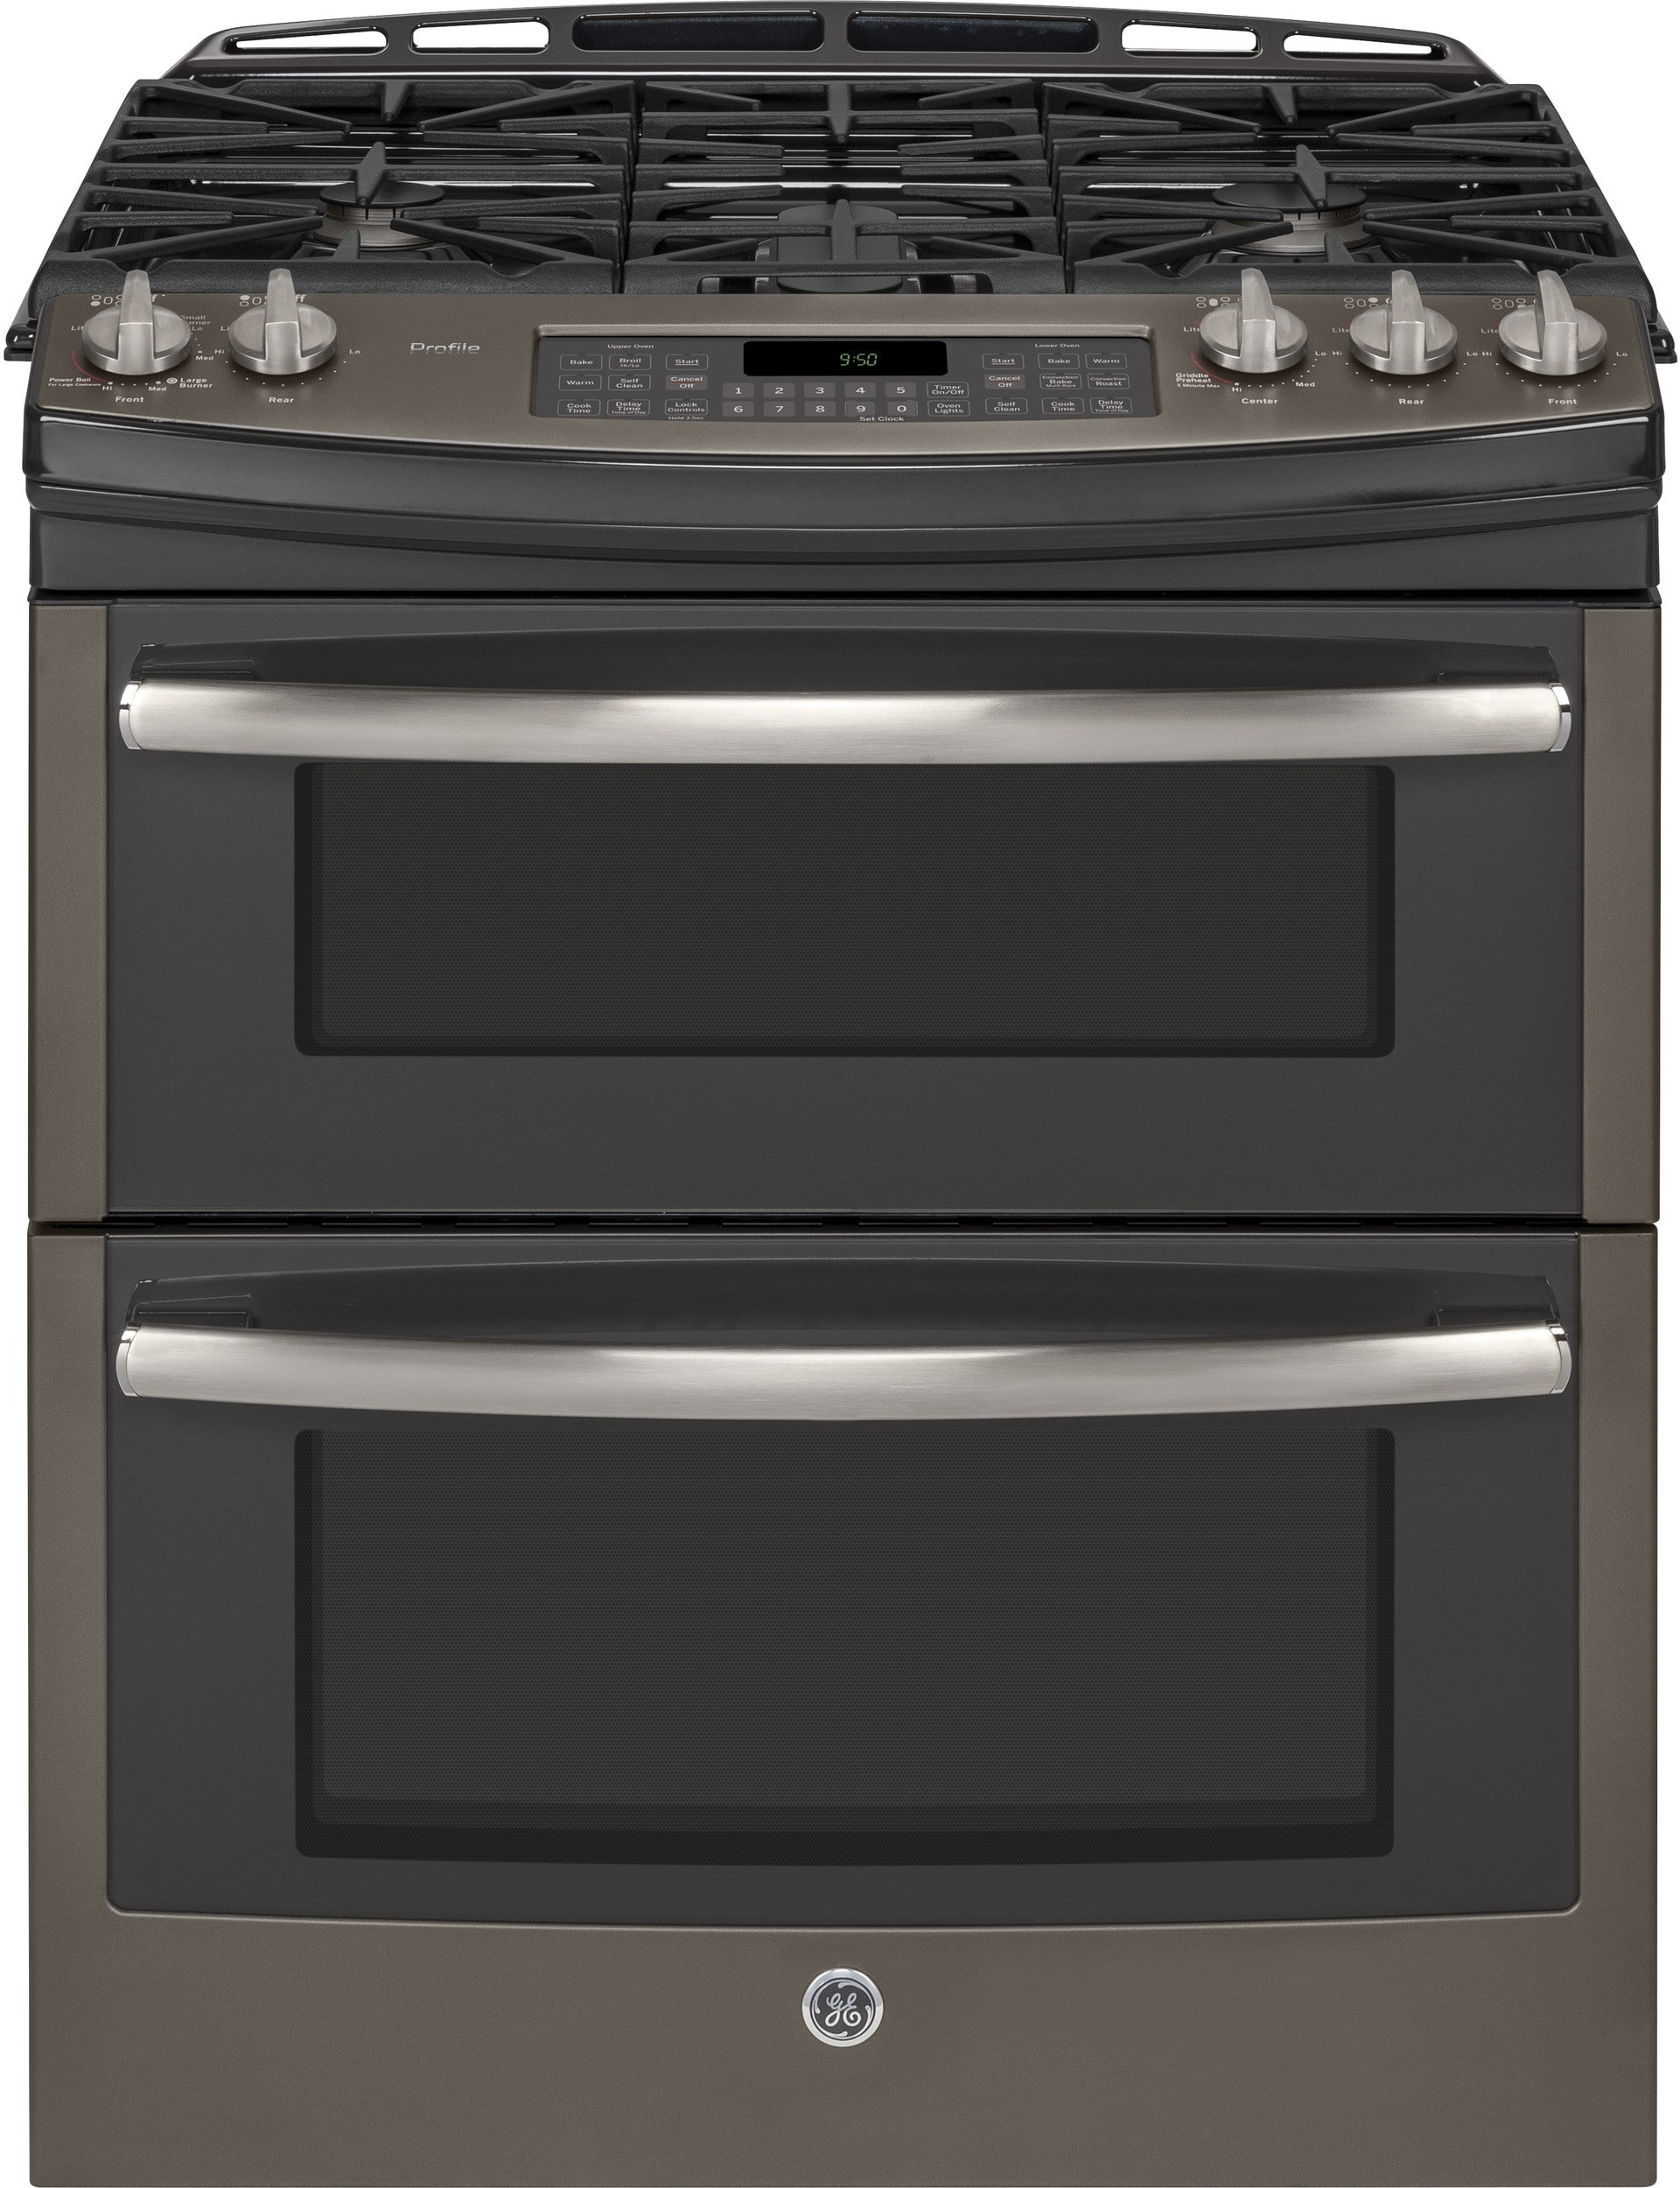 Ge Pgs950eefes 30 Inch Slide In Double Oven Gas Range With